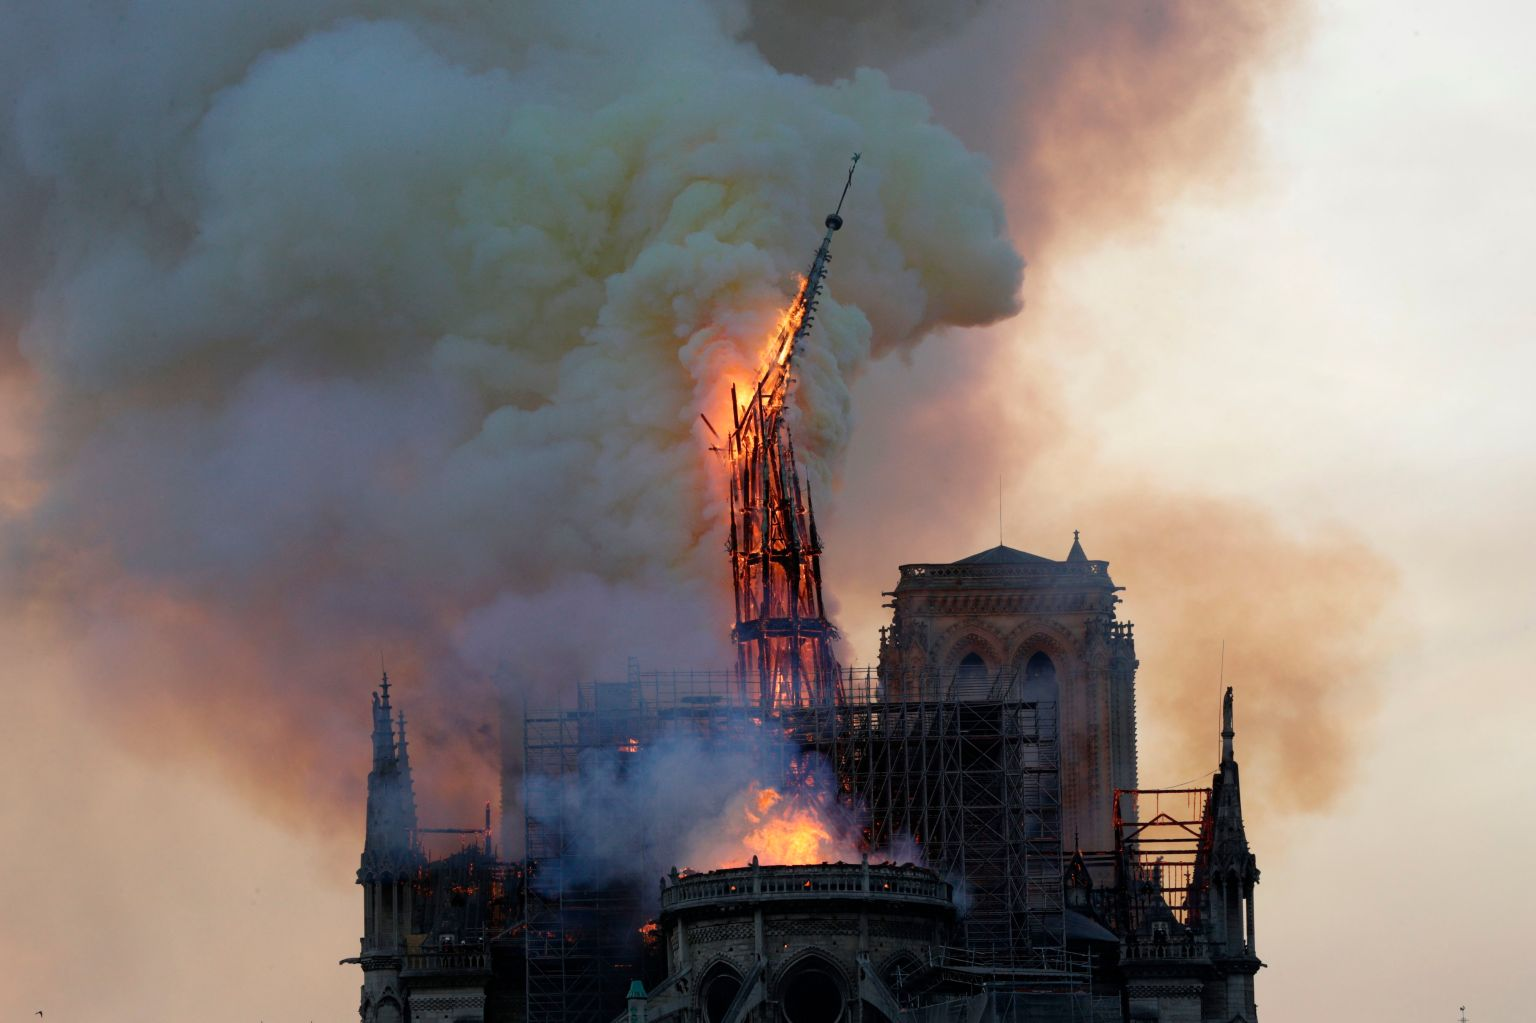 The spire of Notre Dame collapses as the cathedral is engulfed in flames in central Paris on April 15. GEOFFROY VAN DER HASSELT/AFP/Getty Images